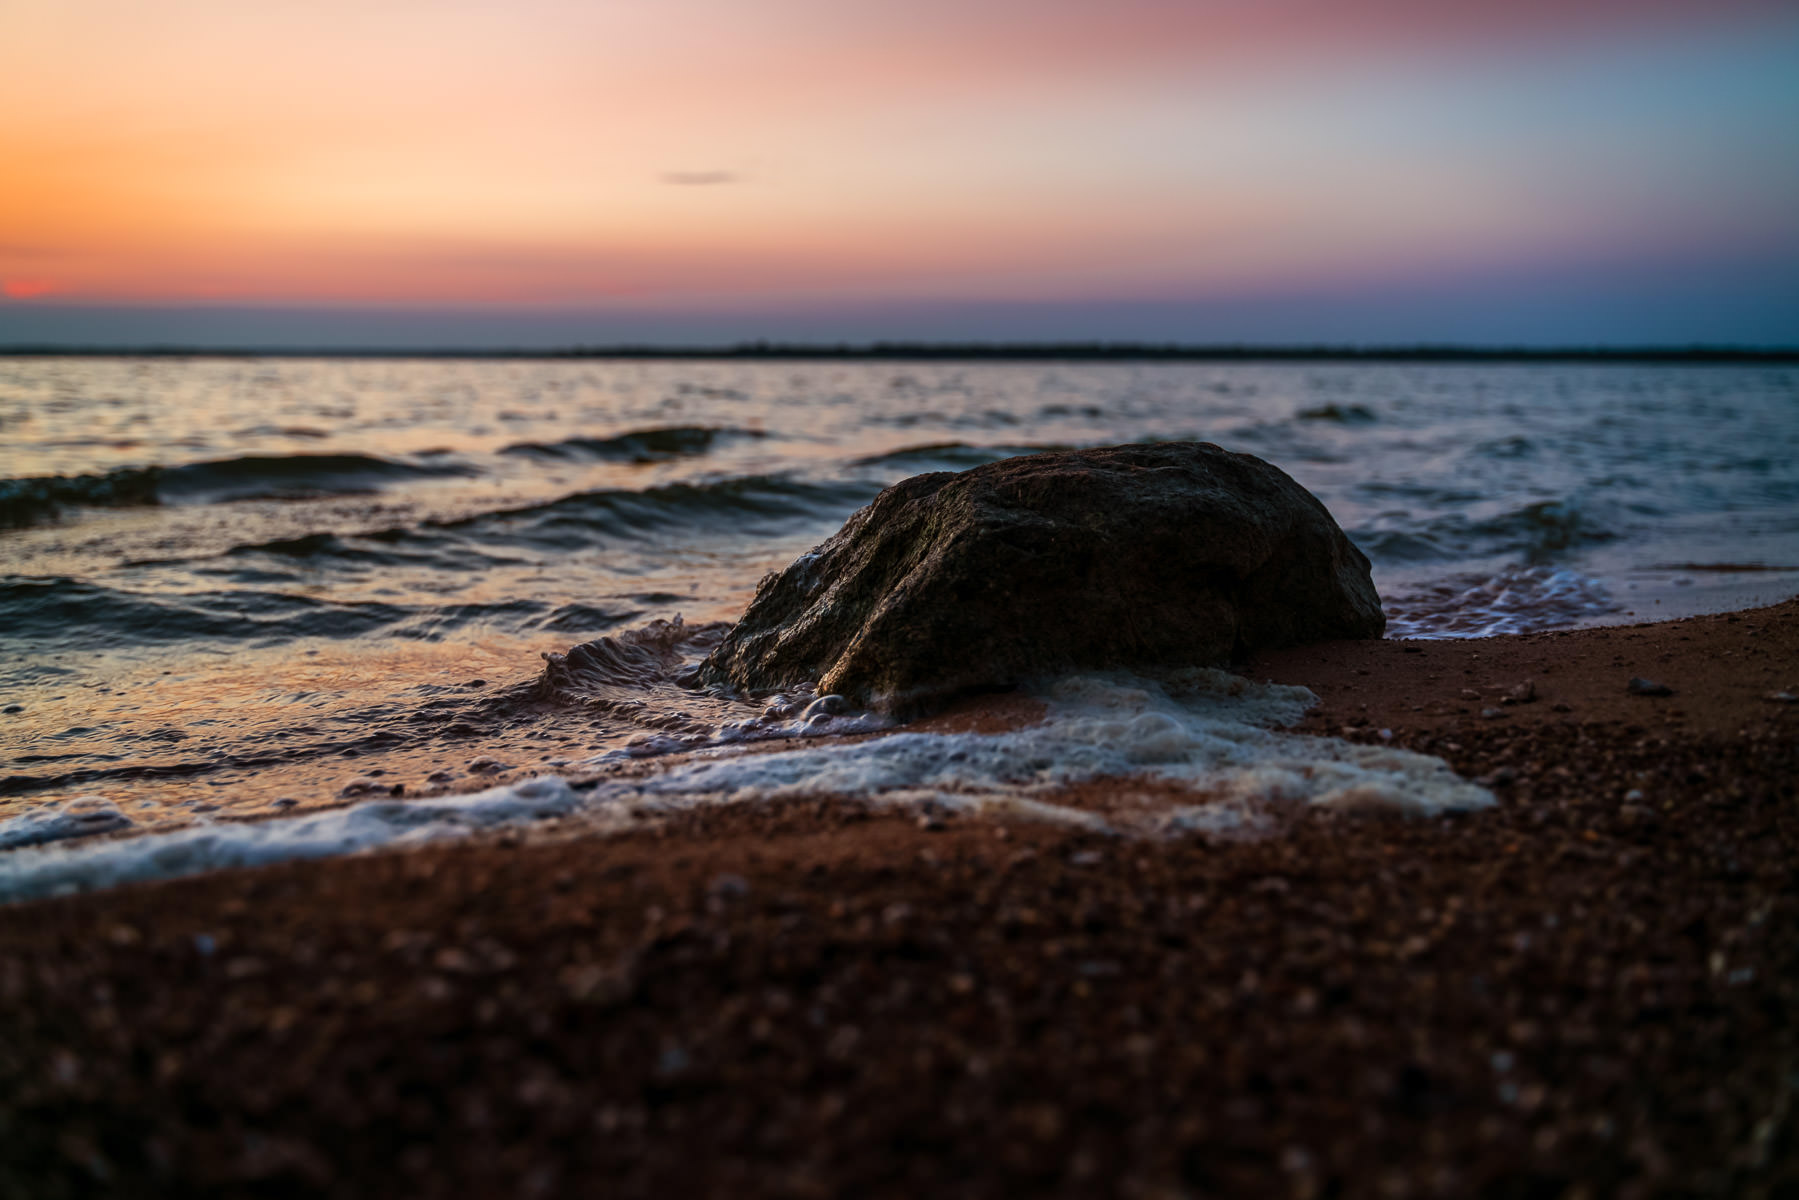 Waves gently lap against a rock as the sun rises on Texas' Lake Lavon.